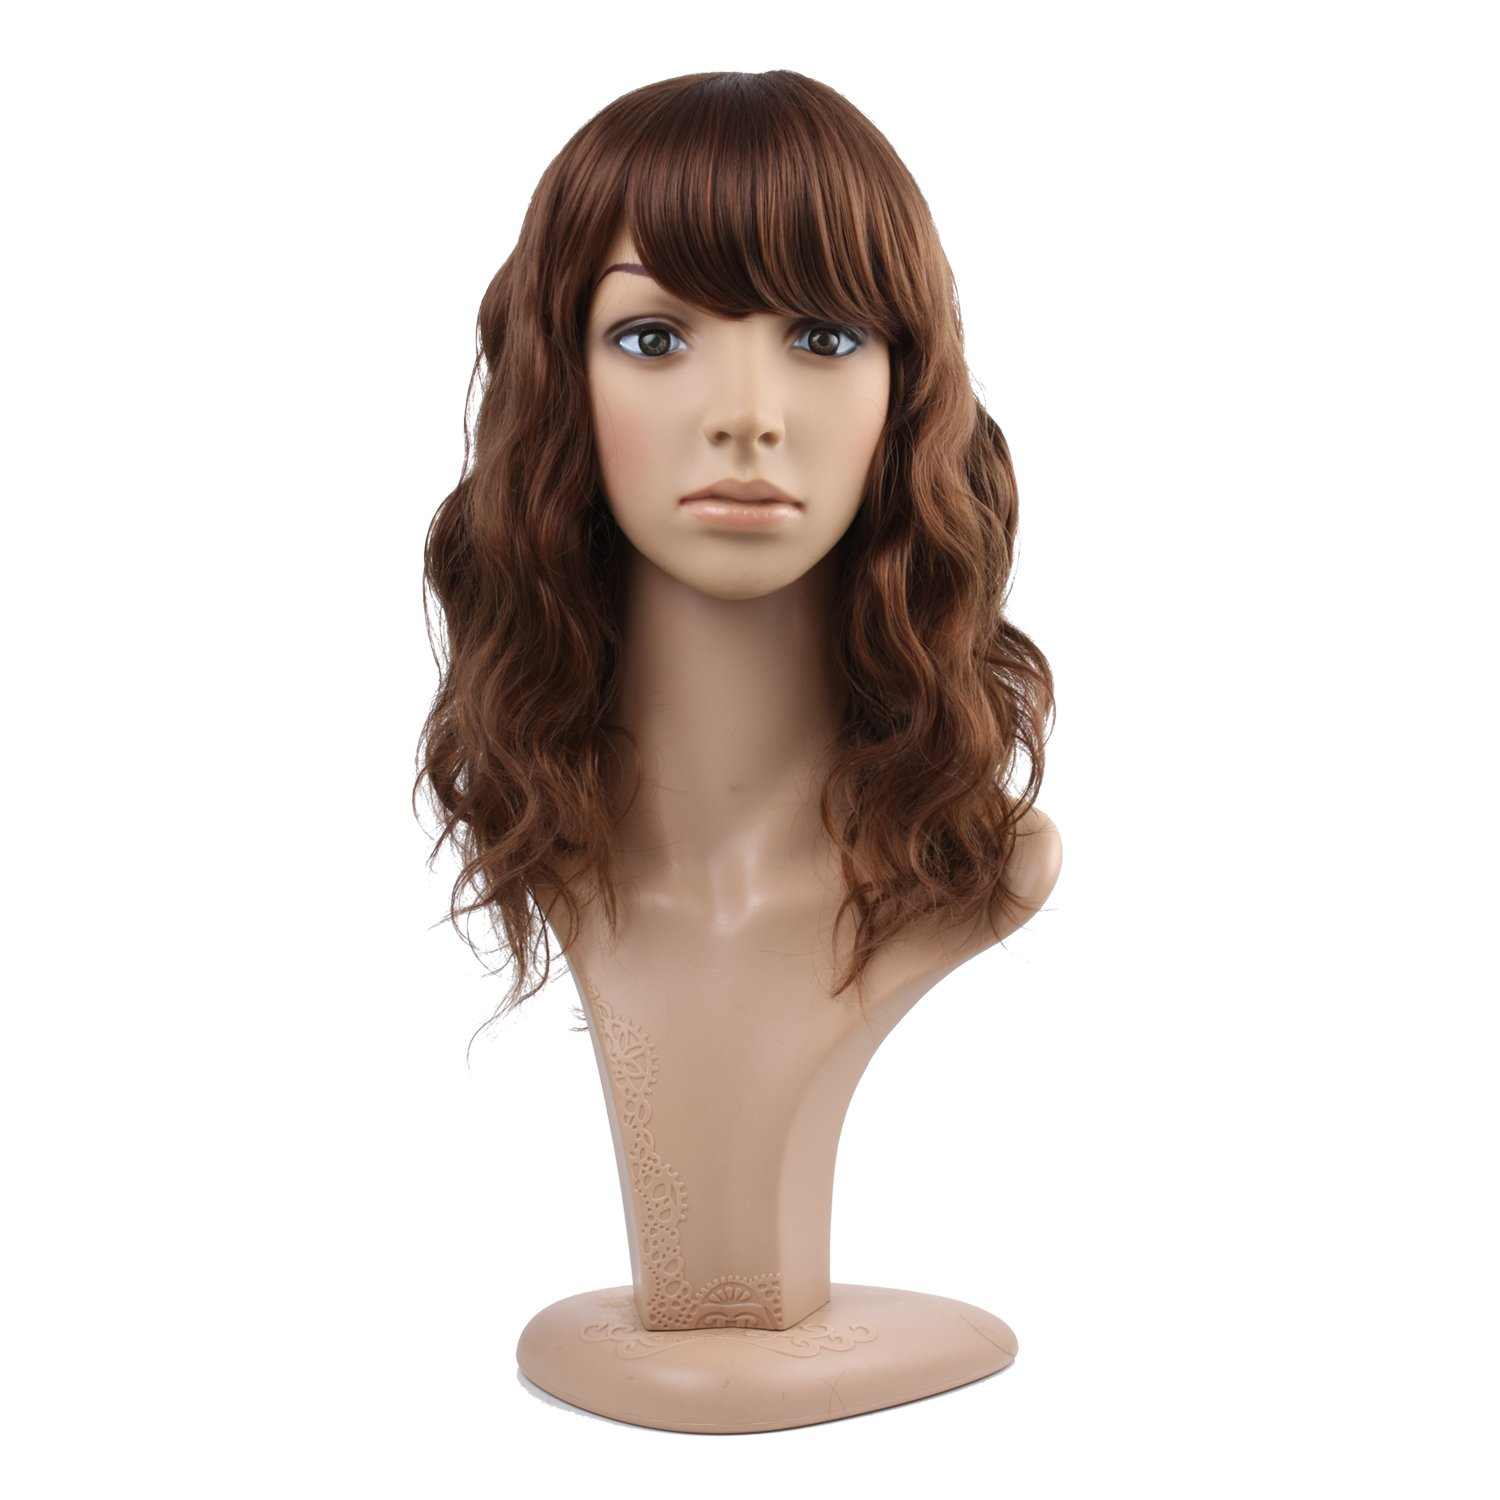 MelodySusie Mid-length Brown Curly Wig - Attractive Women Mid-length Layered Curly Wig with Free Wig Cap and Wig Comb (Light Reddish Brown)